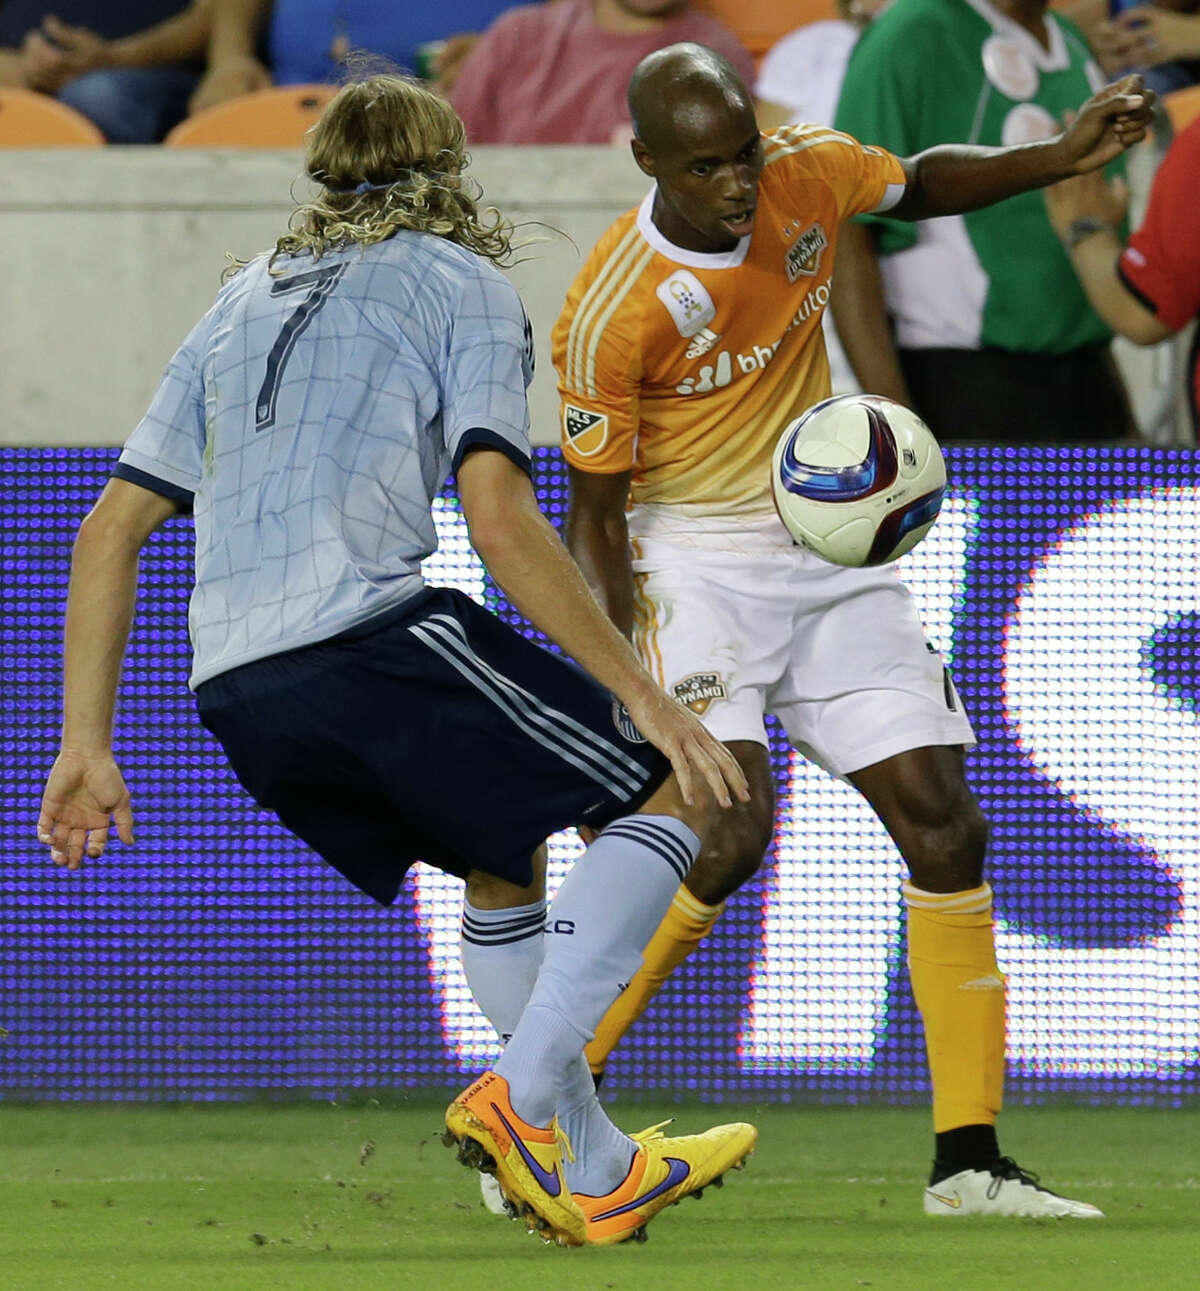 Sporting Kansas City's Chance Myers, left, battles Houston Dynamo's DaMarcus Beasley, right, for the ball during the fist half of MLS game at BBVA Compass Stadium Wednesday, Sept. 23, 2015, in Houston.